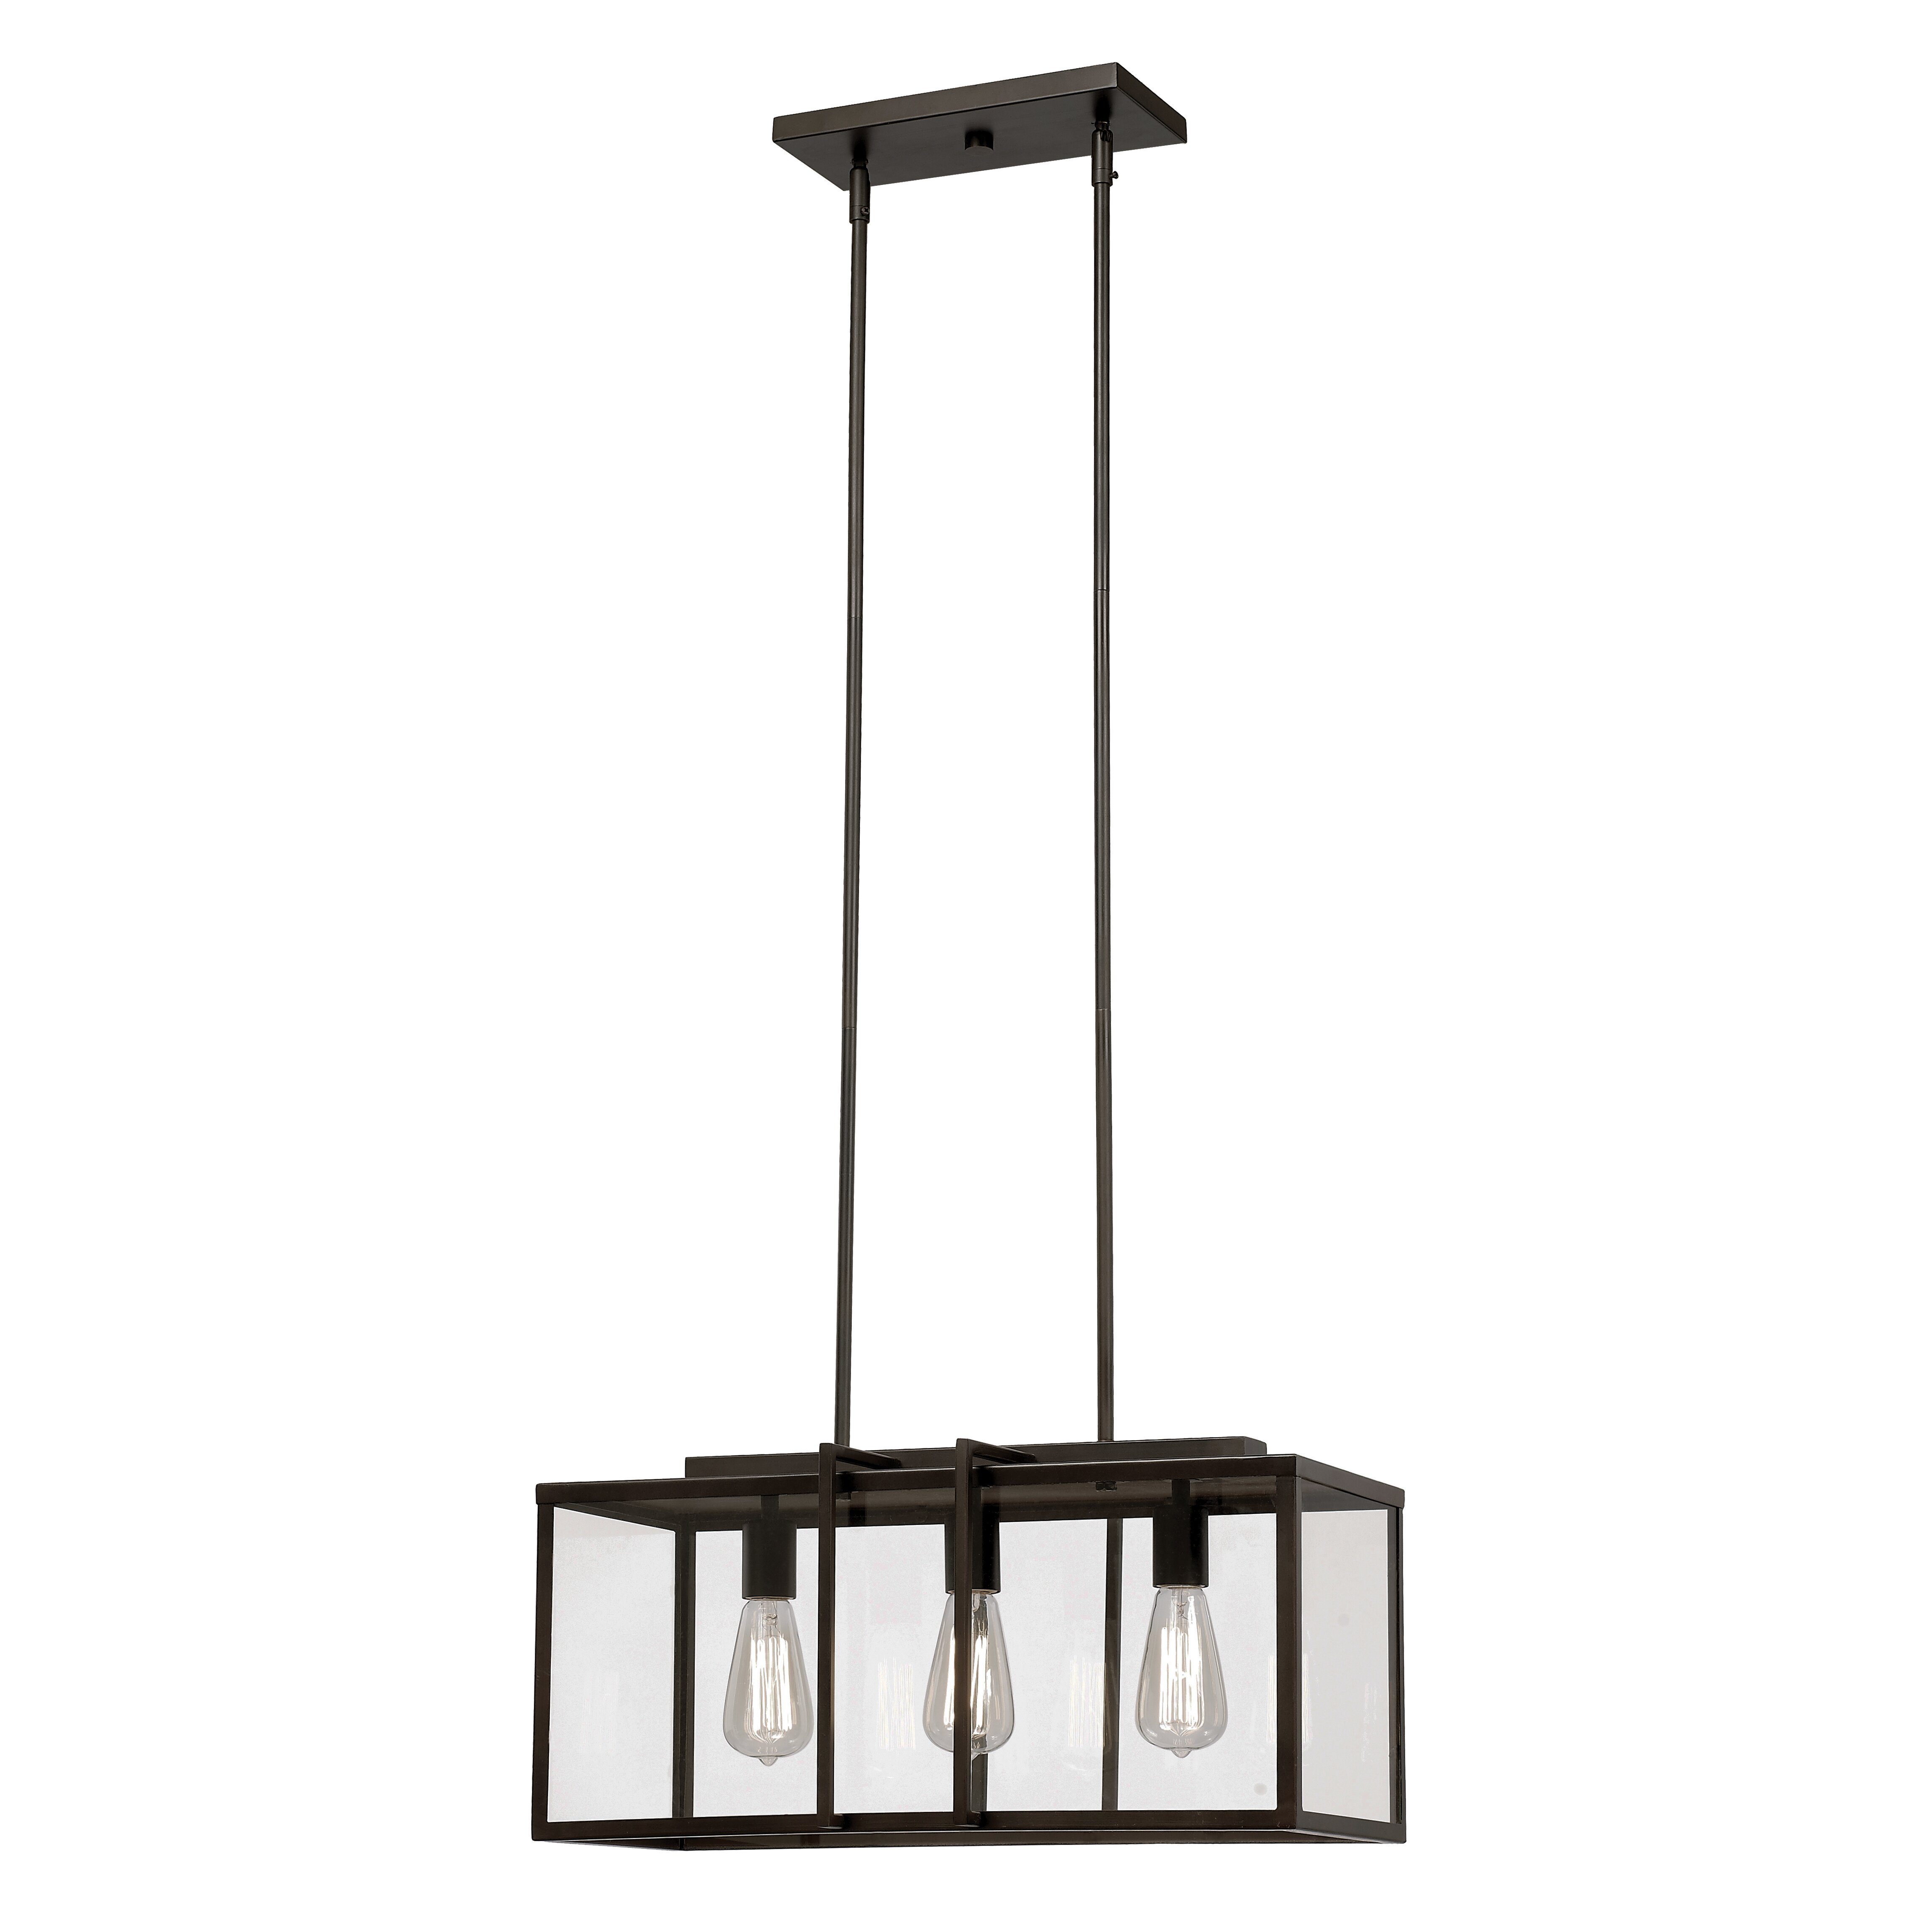 Kitchen Island Lantern Pendants: Trent Austin Design 3 Light Kitchen Island Pendant & Reviews